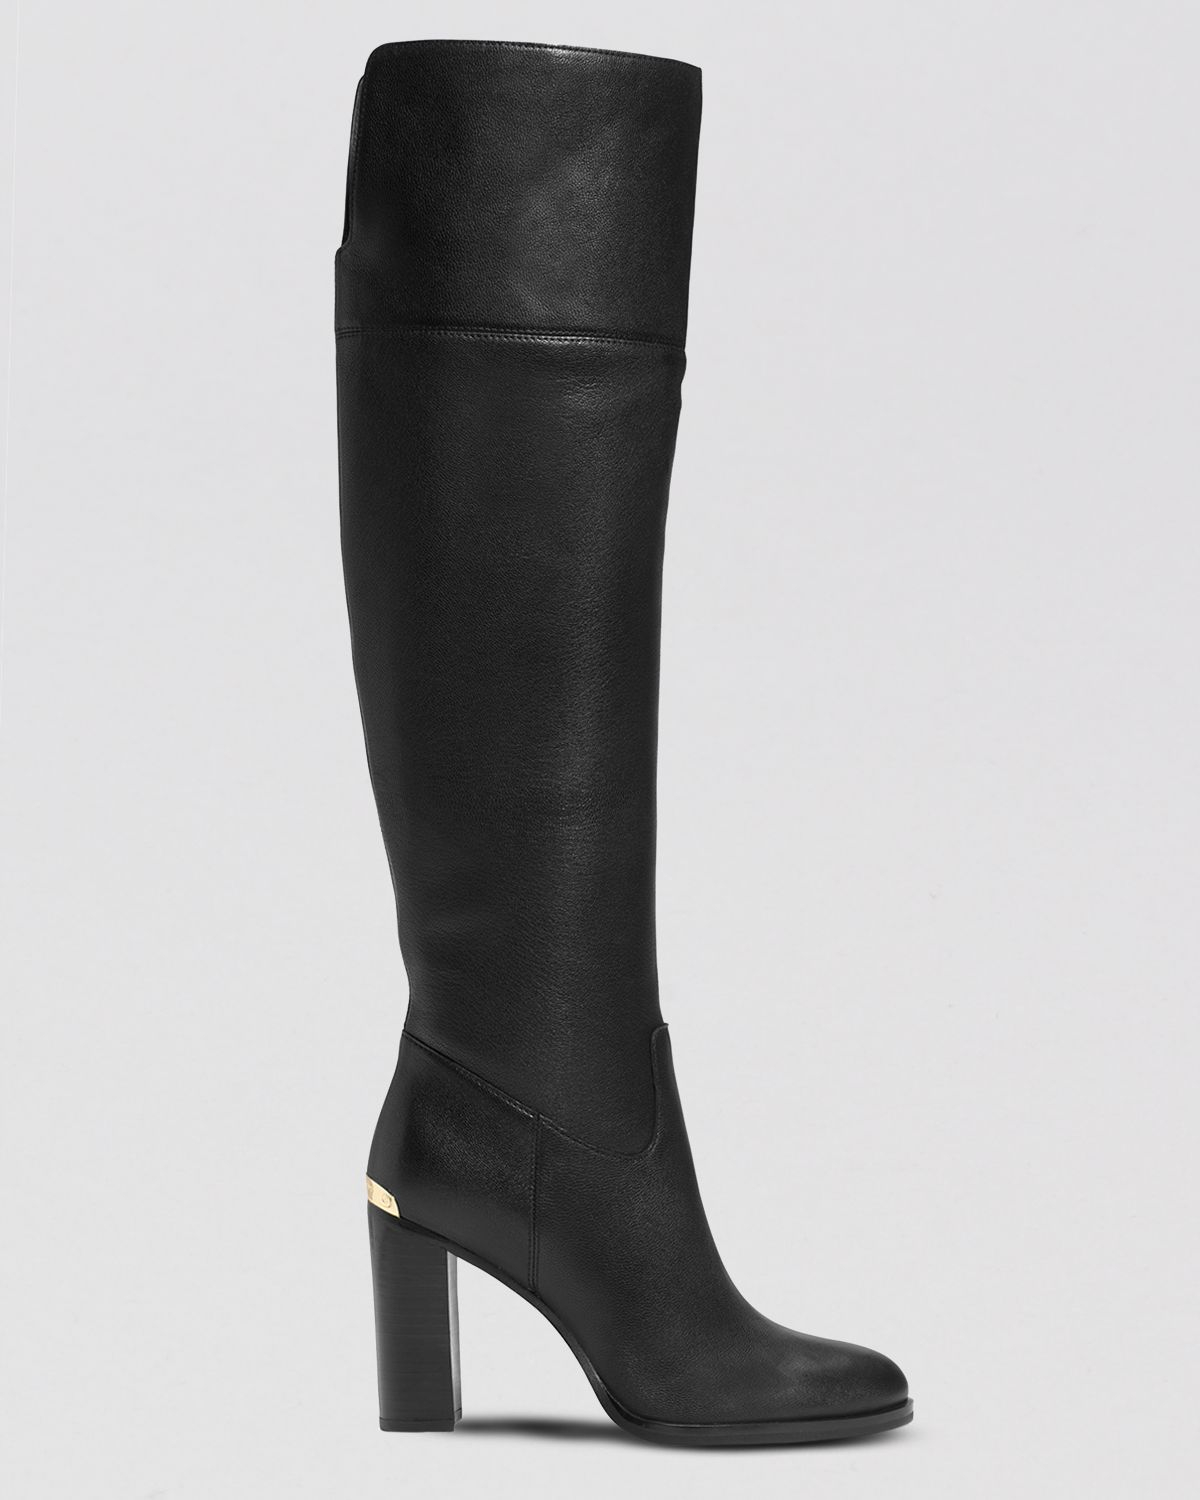 Michael michael kors Over The Knee Boots - Regina in Black | Lyst